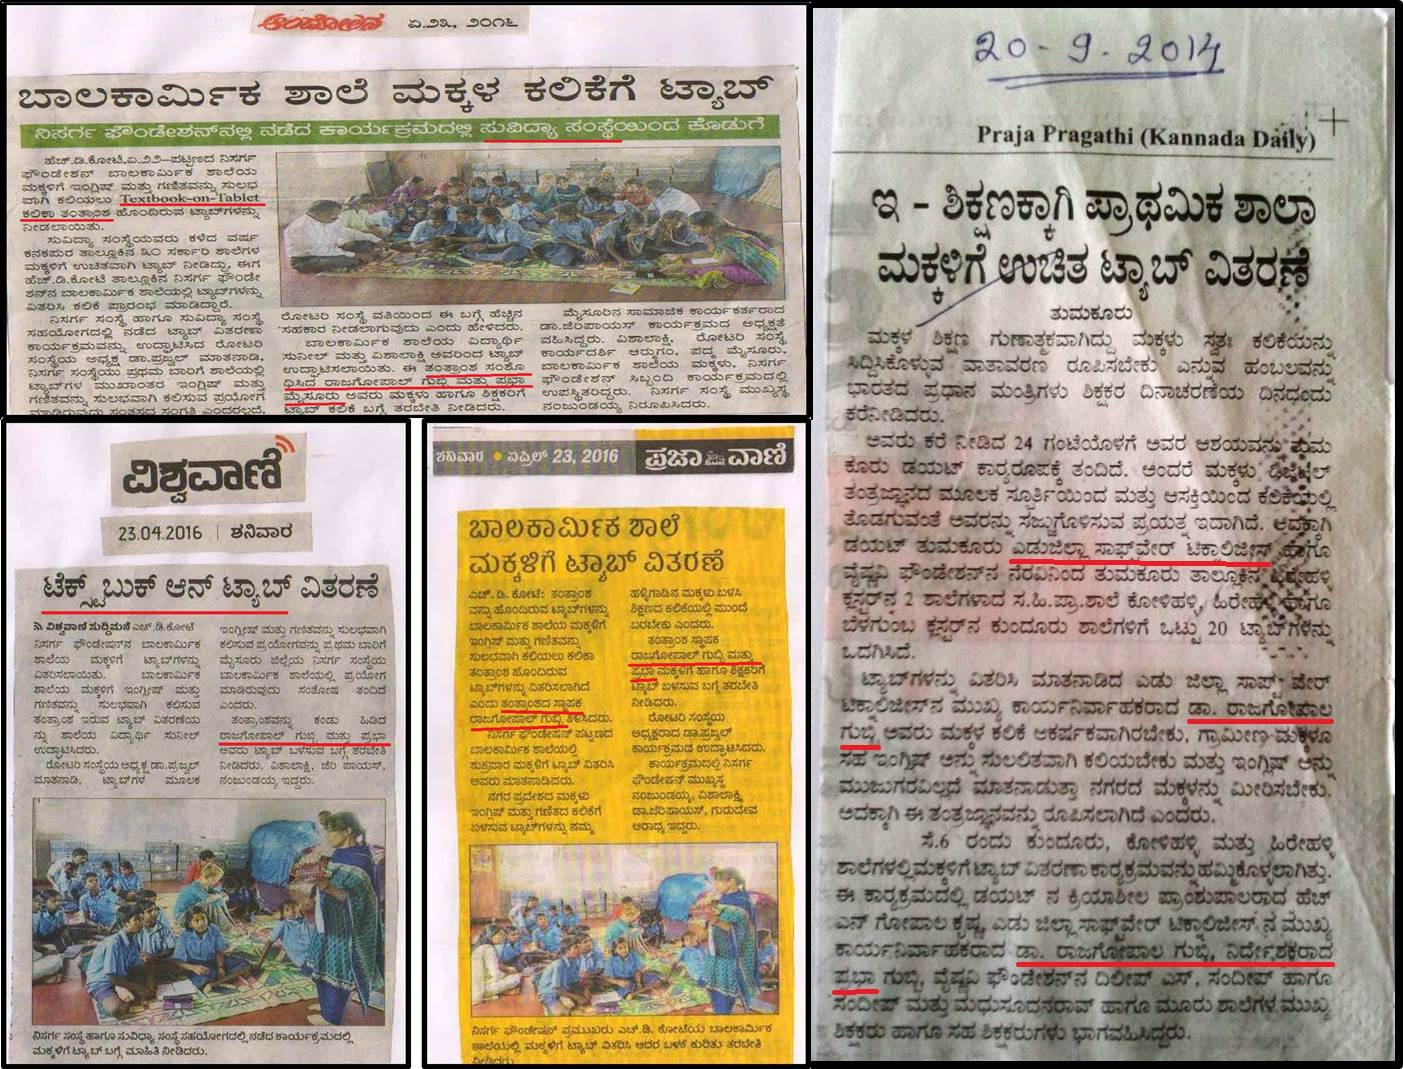 Suvidya Foundation in the news